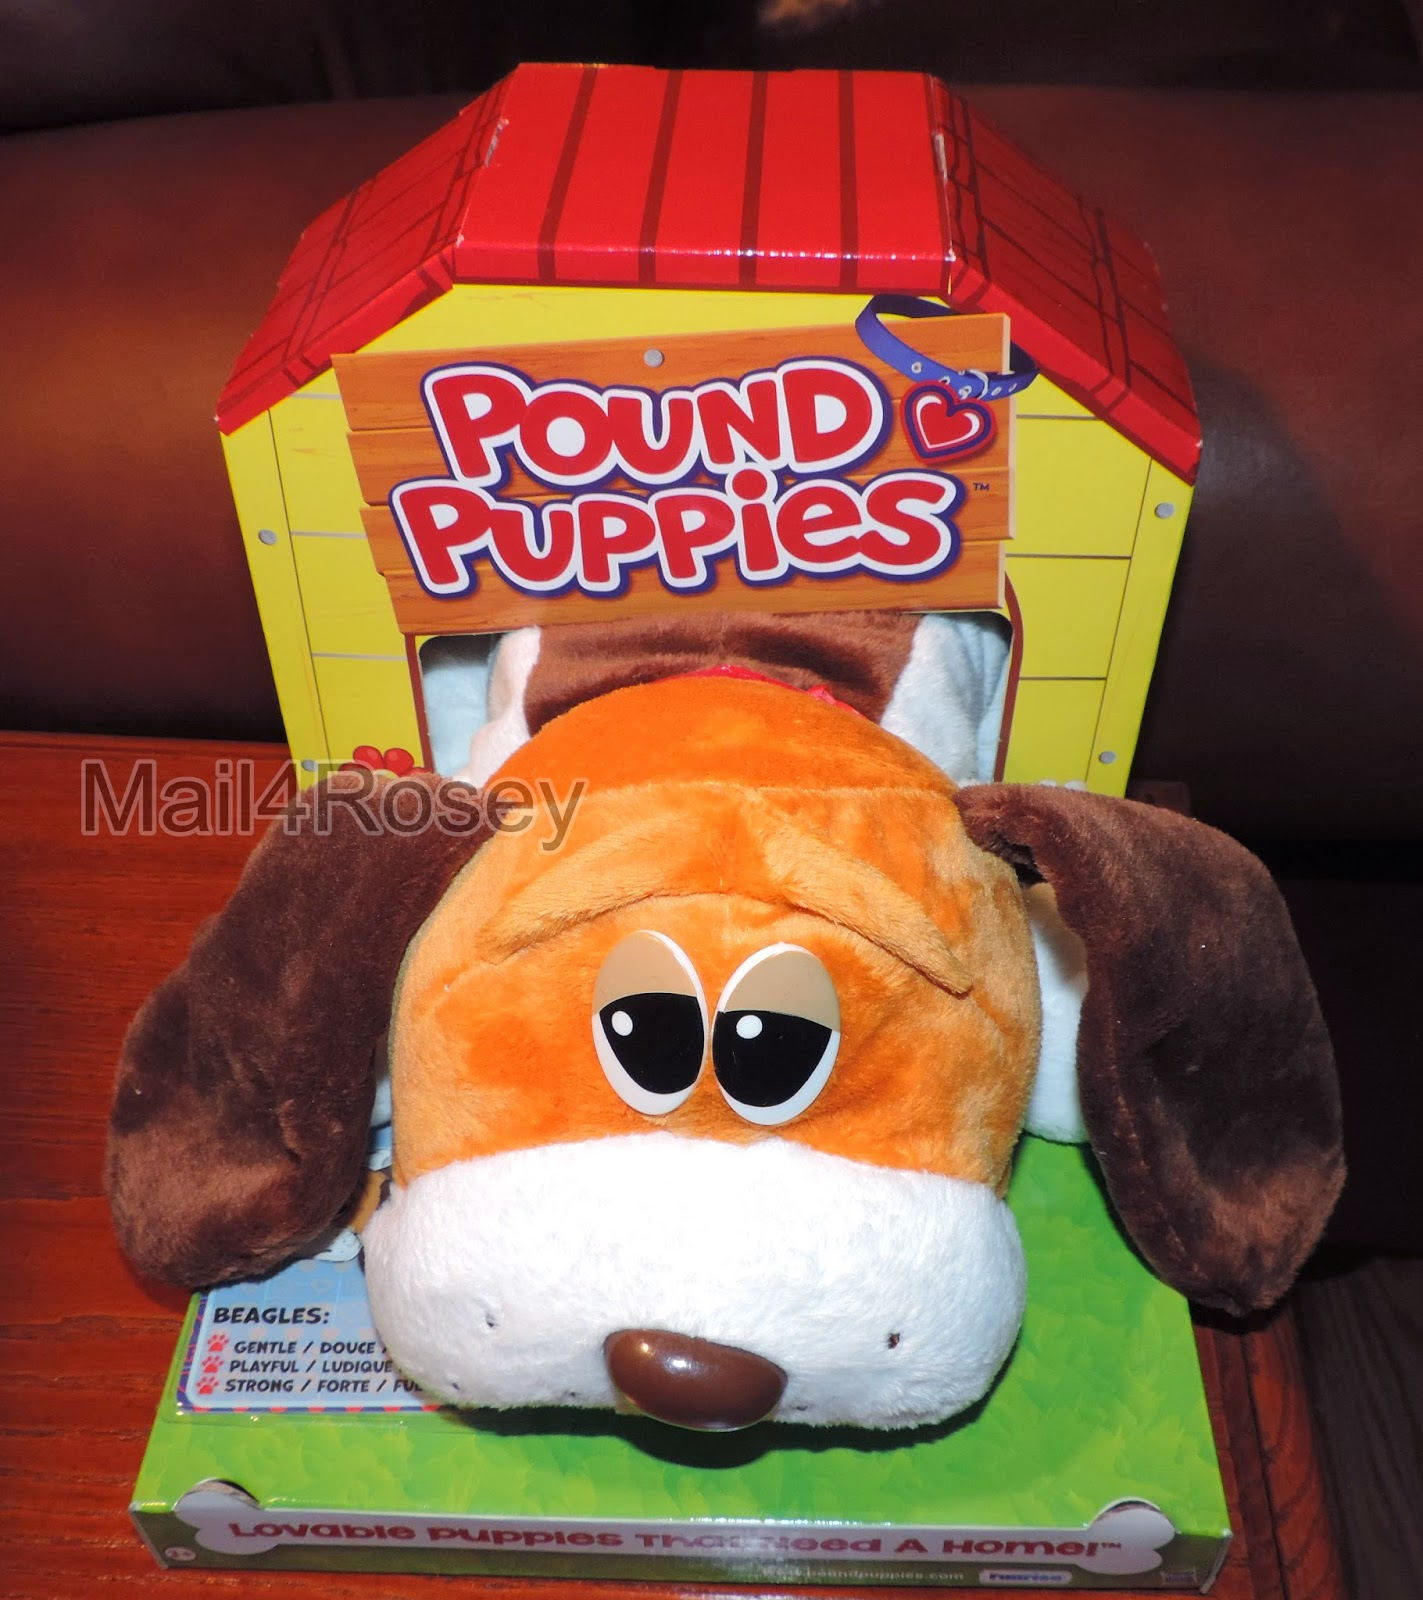 Mail4Rosey Win a Pound Puppy